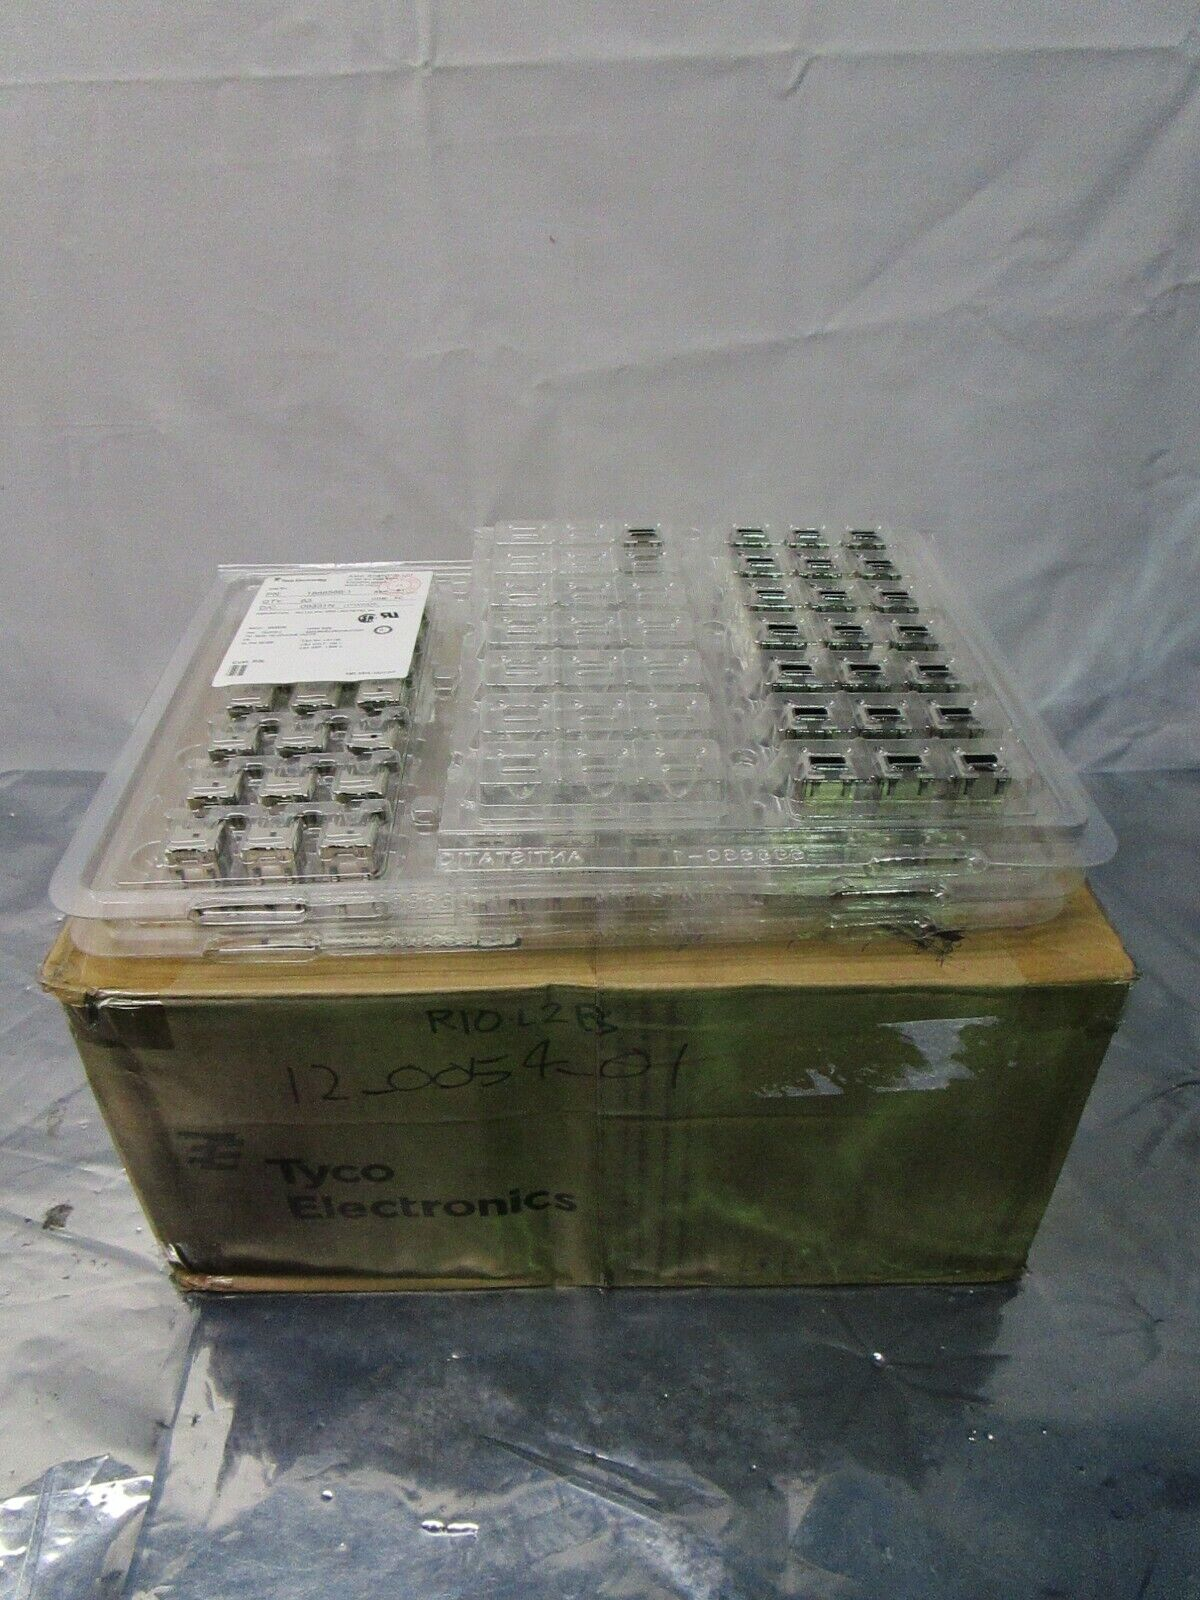 1 Lot of 148 TE Connectivity 1888566-1 INVERTED MODULAR JACK ASSEMBLY, 102501